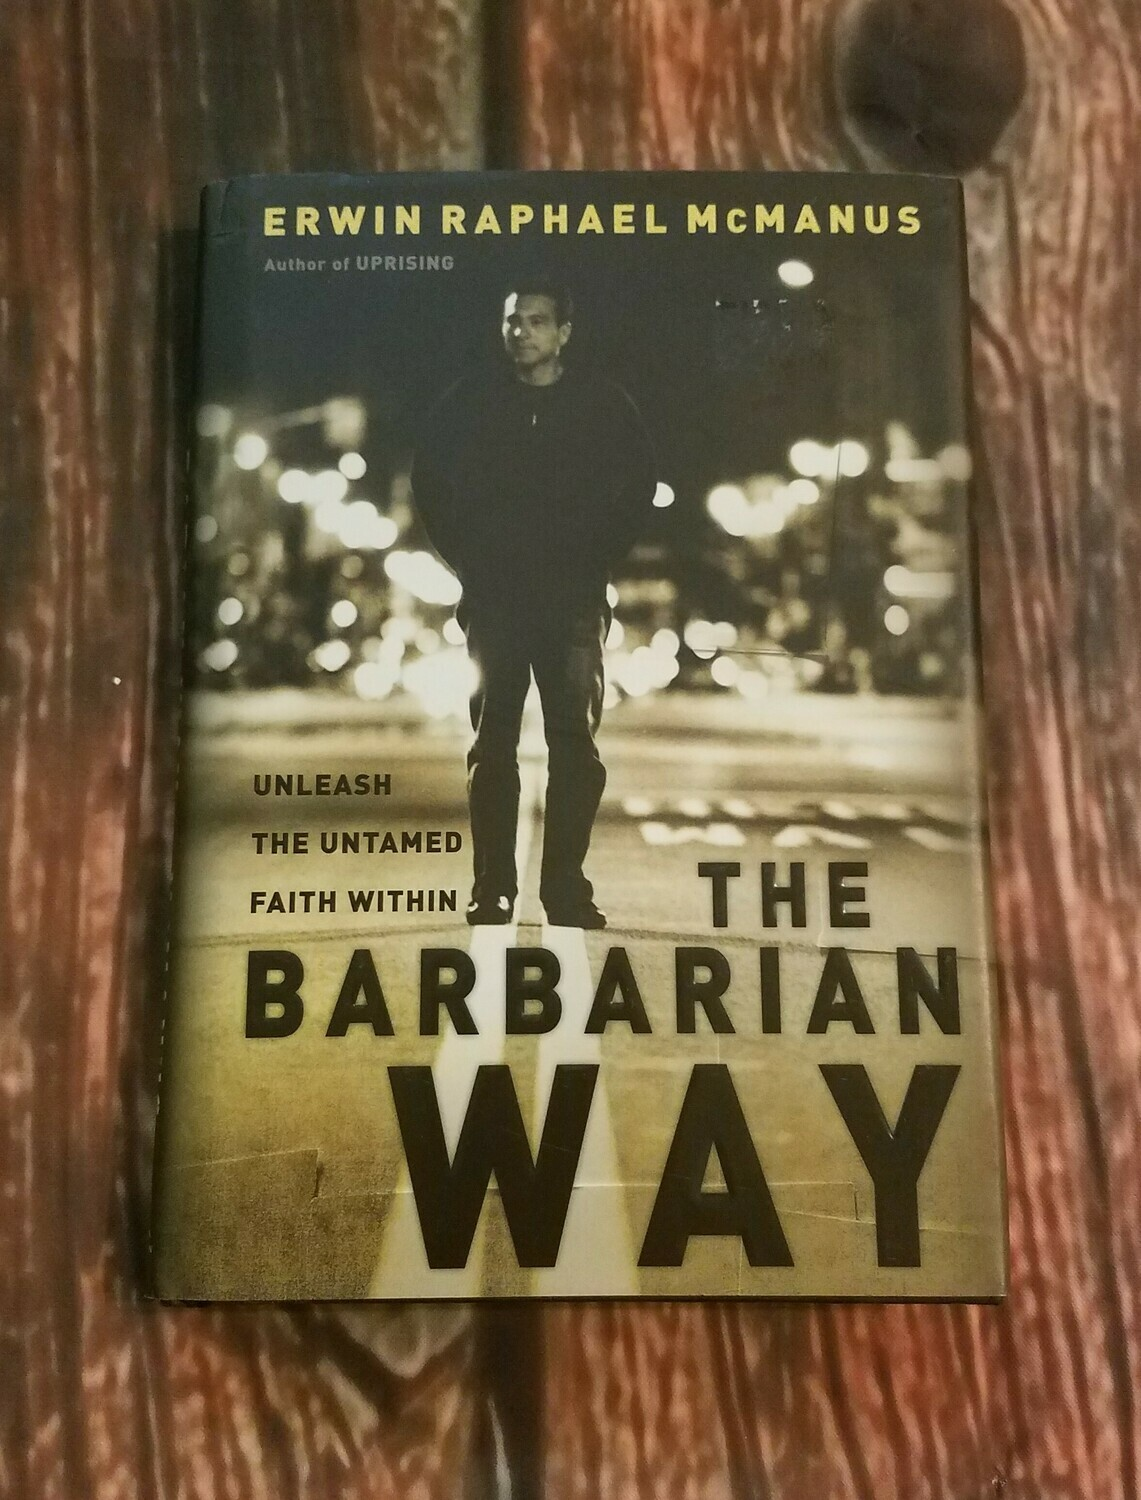 The Barbarian Way by Erwin Raphael McManus